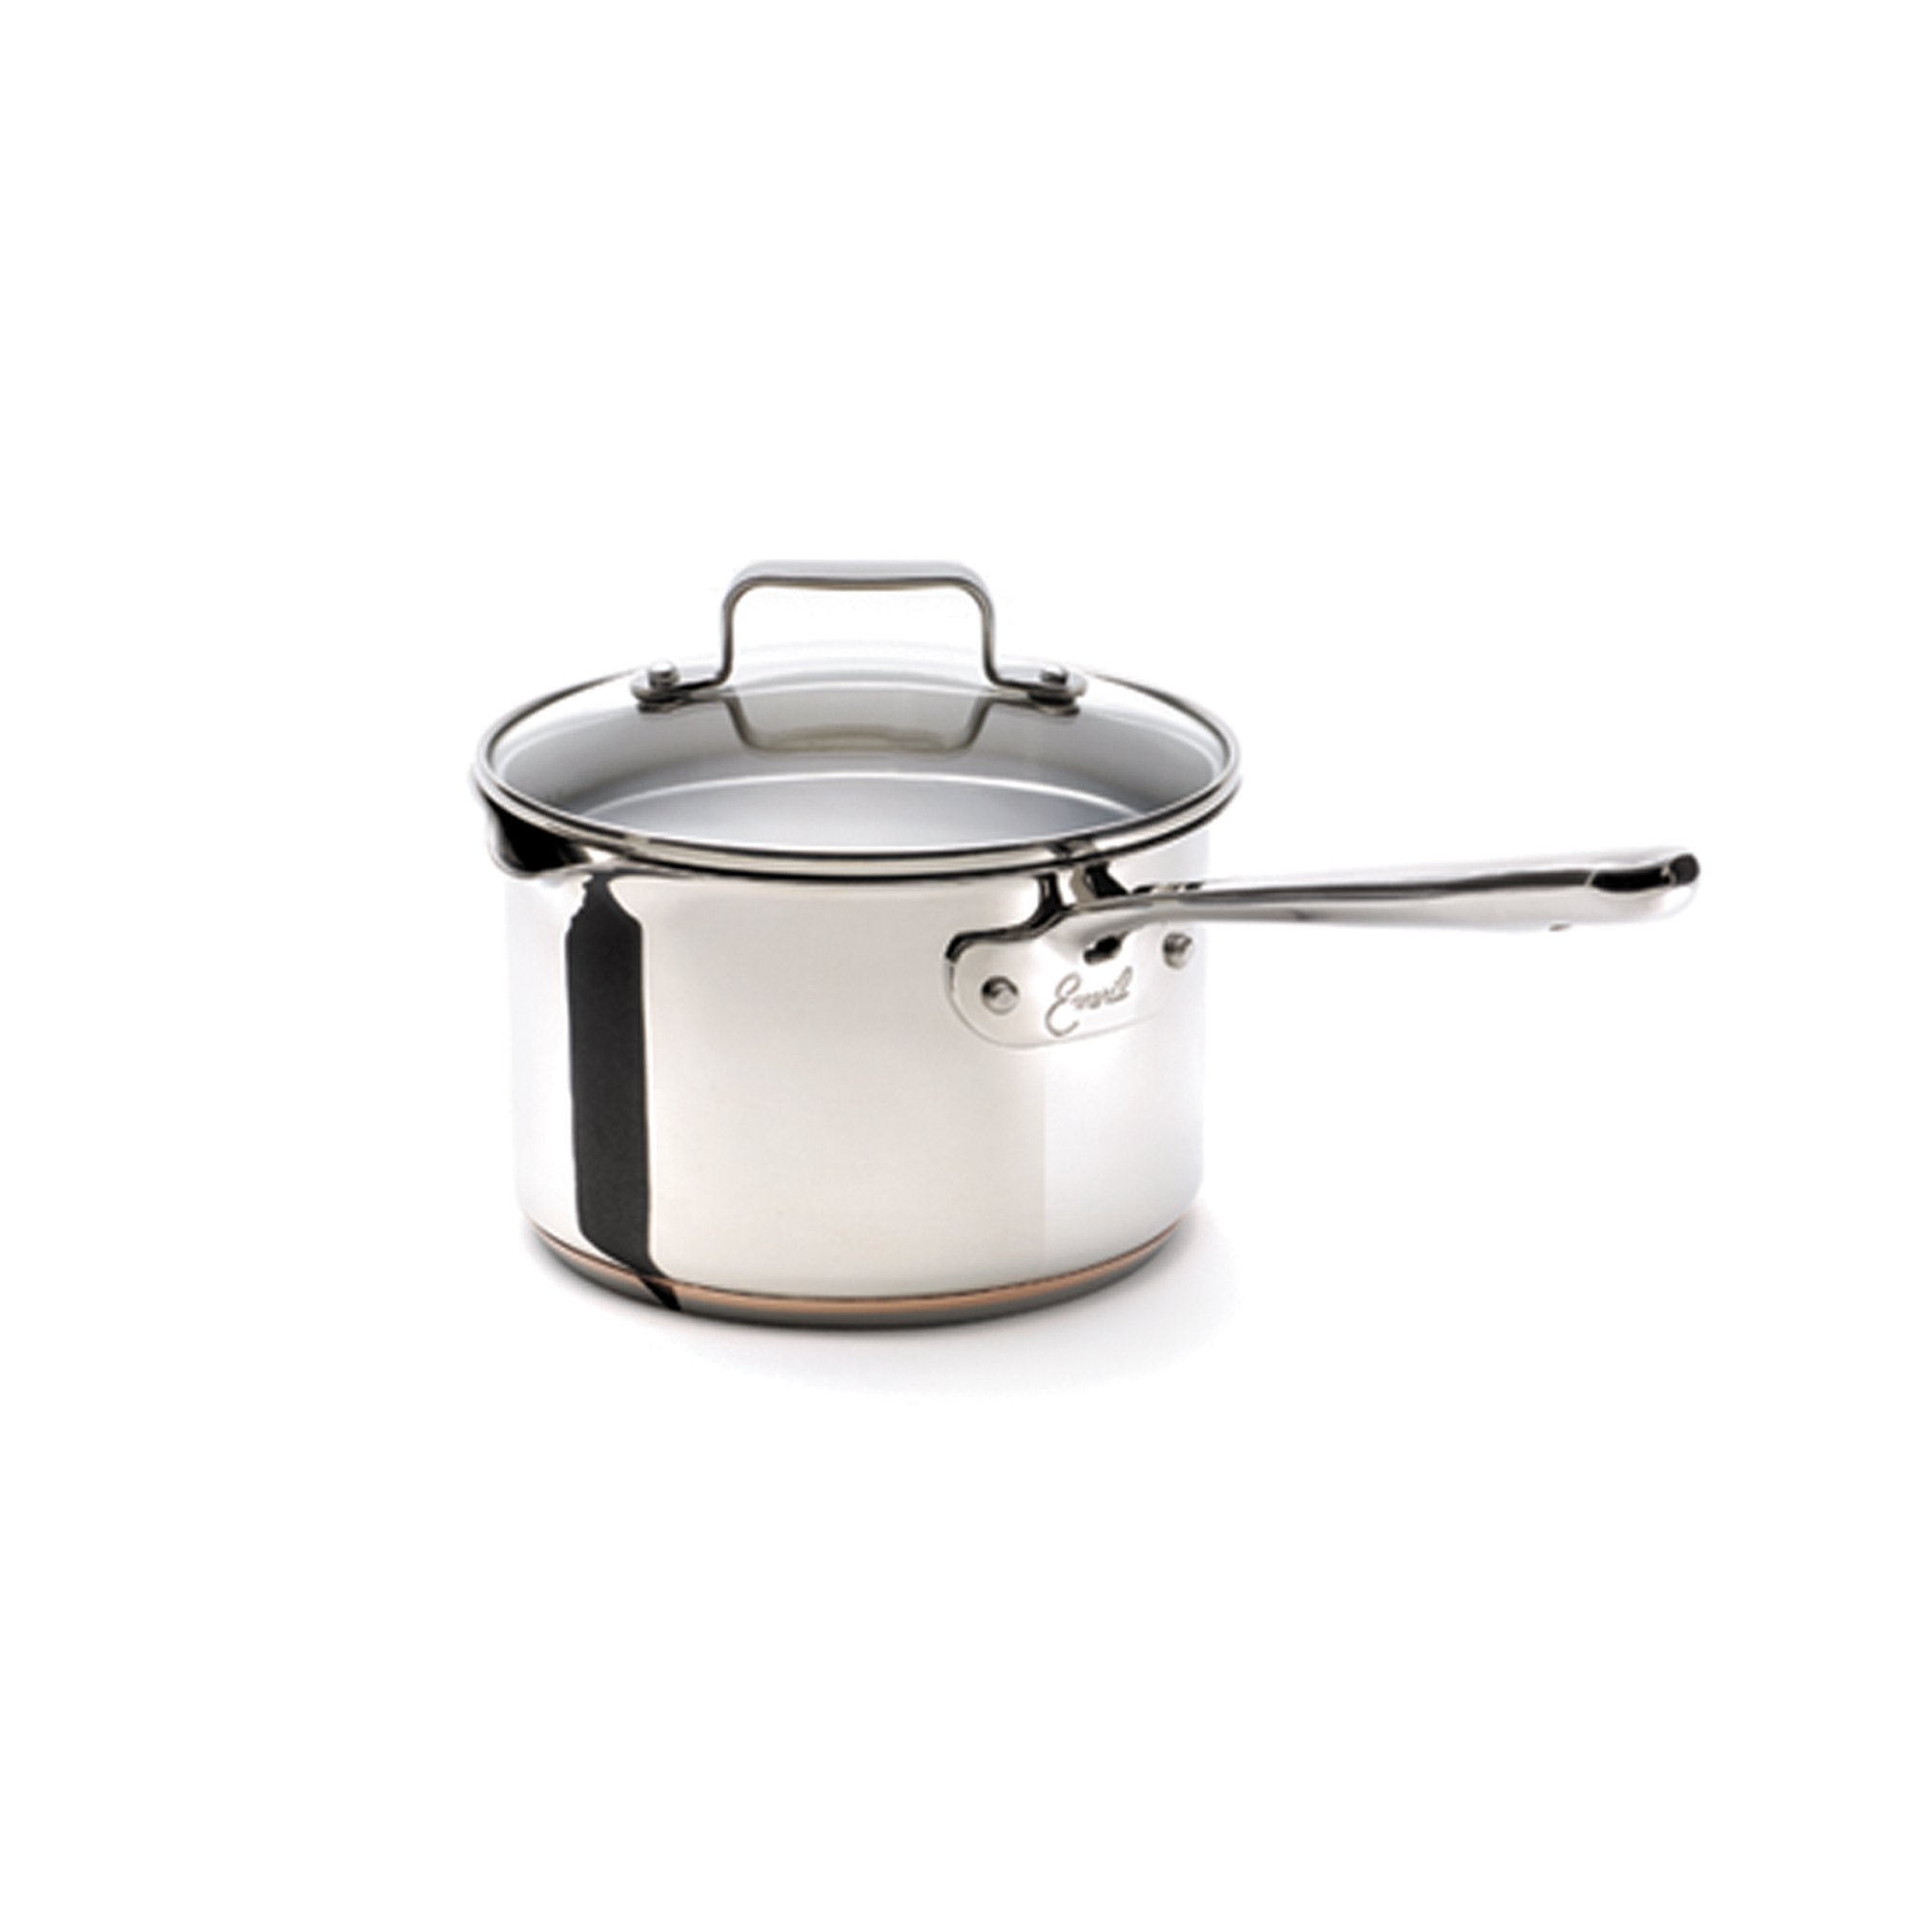 Emeril Stainless Steel with Copper Dishwasher Safe Sauce Pan with Pour Spouts and Lid Cookware, 3-Quart, Silver